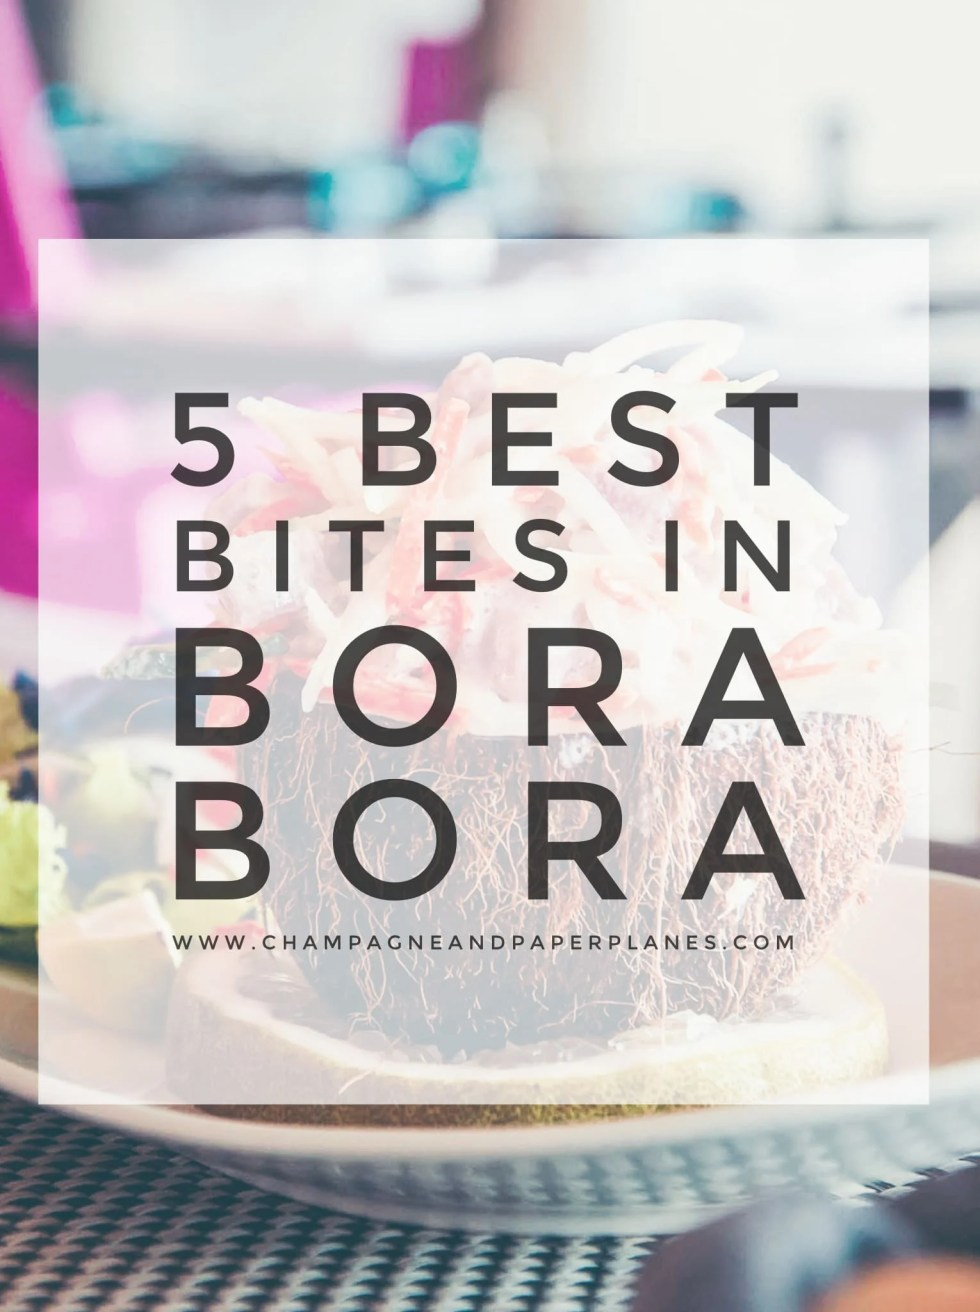 5 Best Bites in Bora Bora - What & Where to Eat on the Island